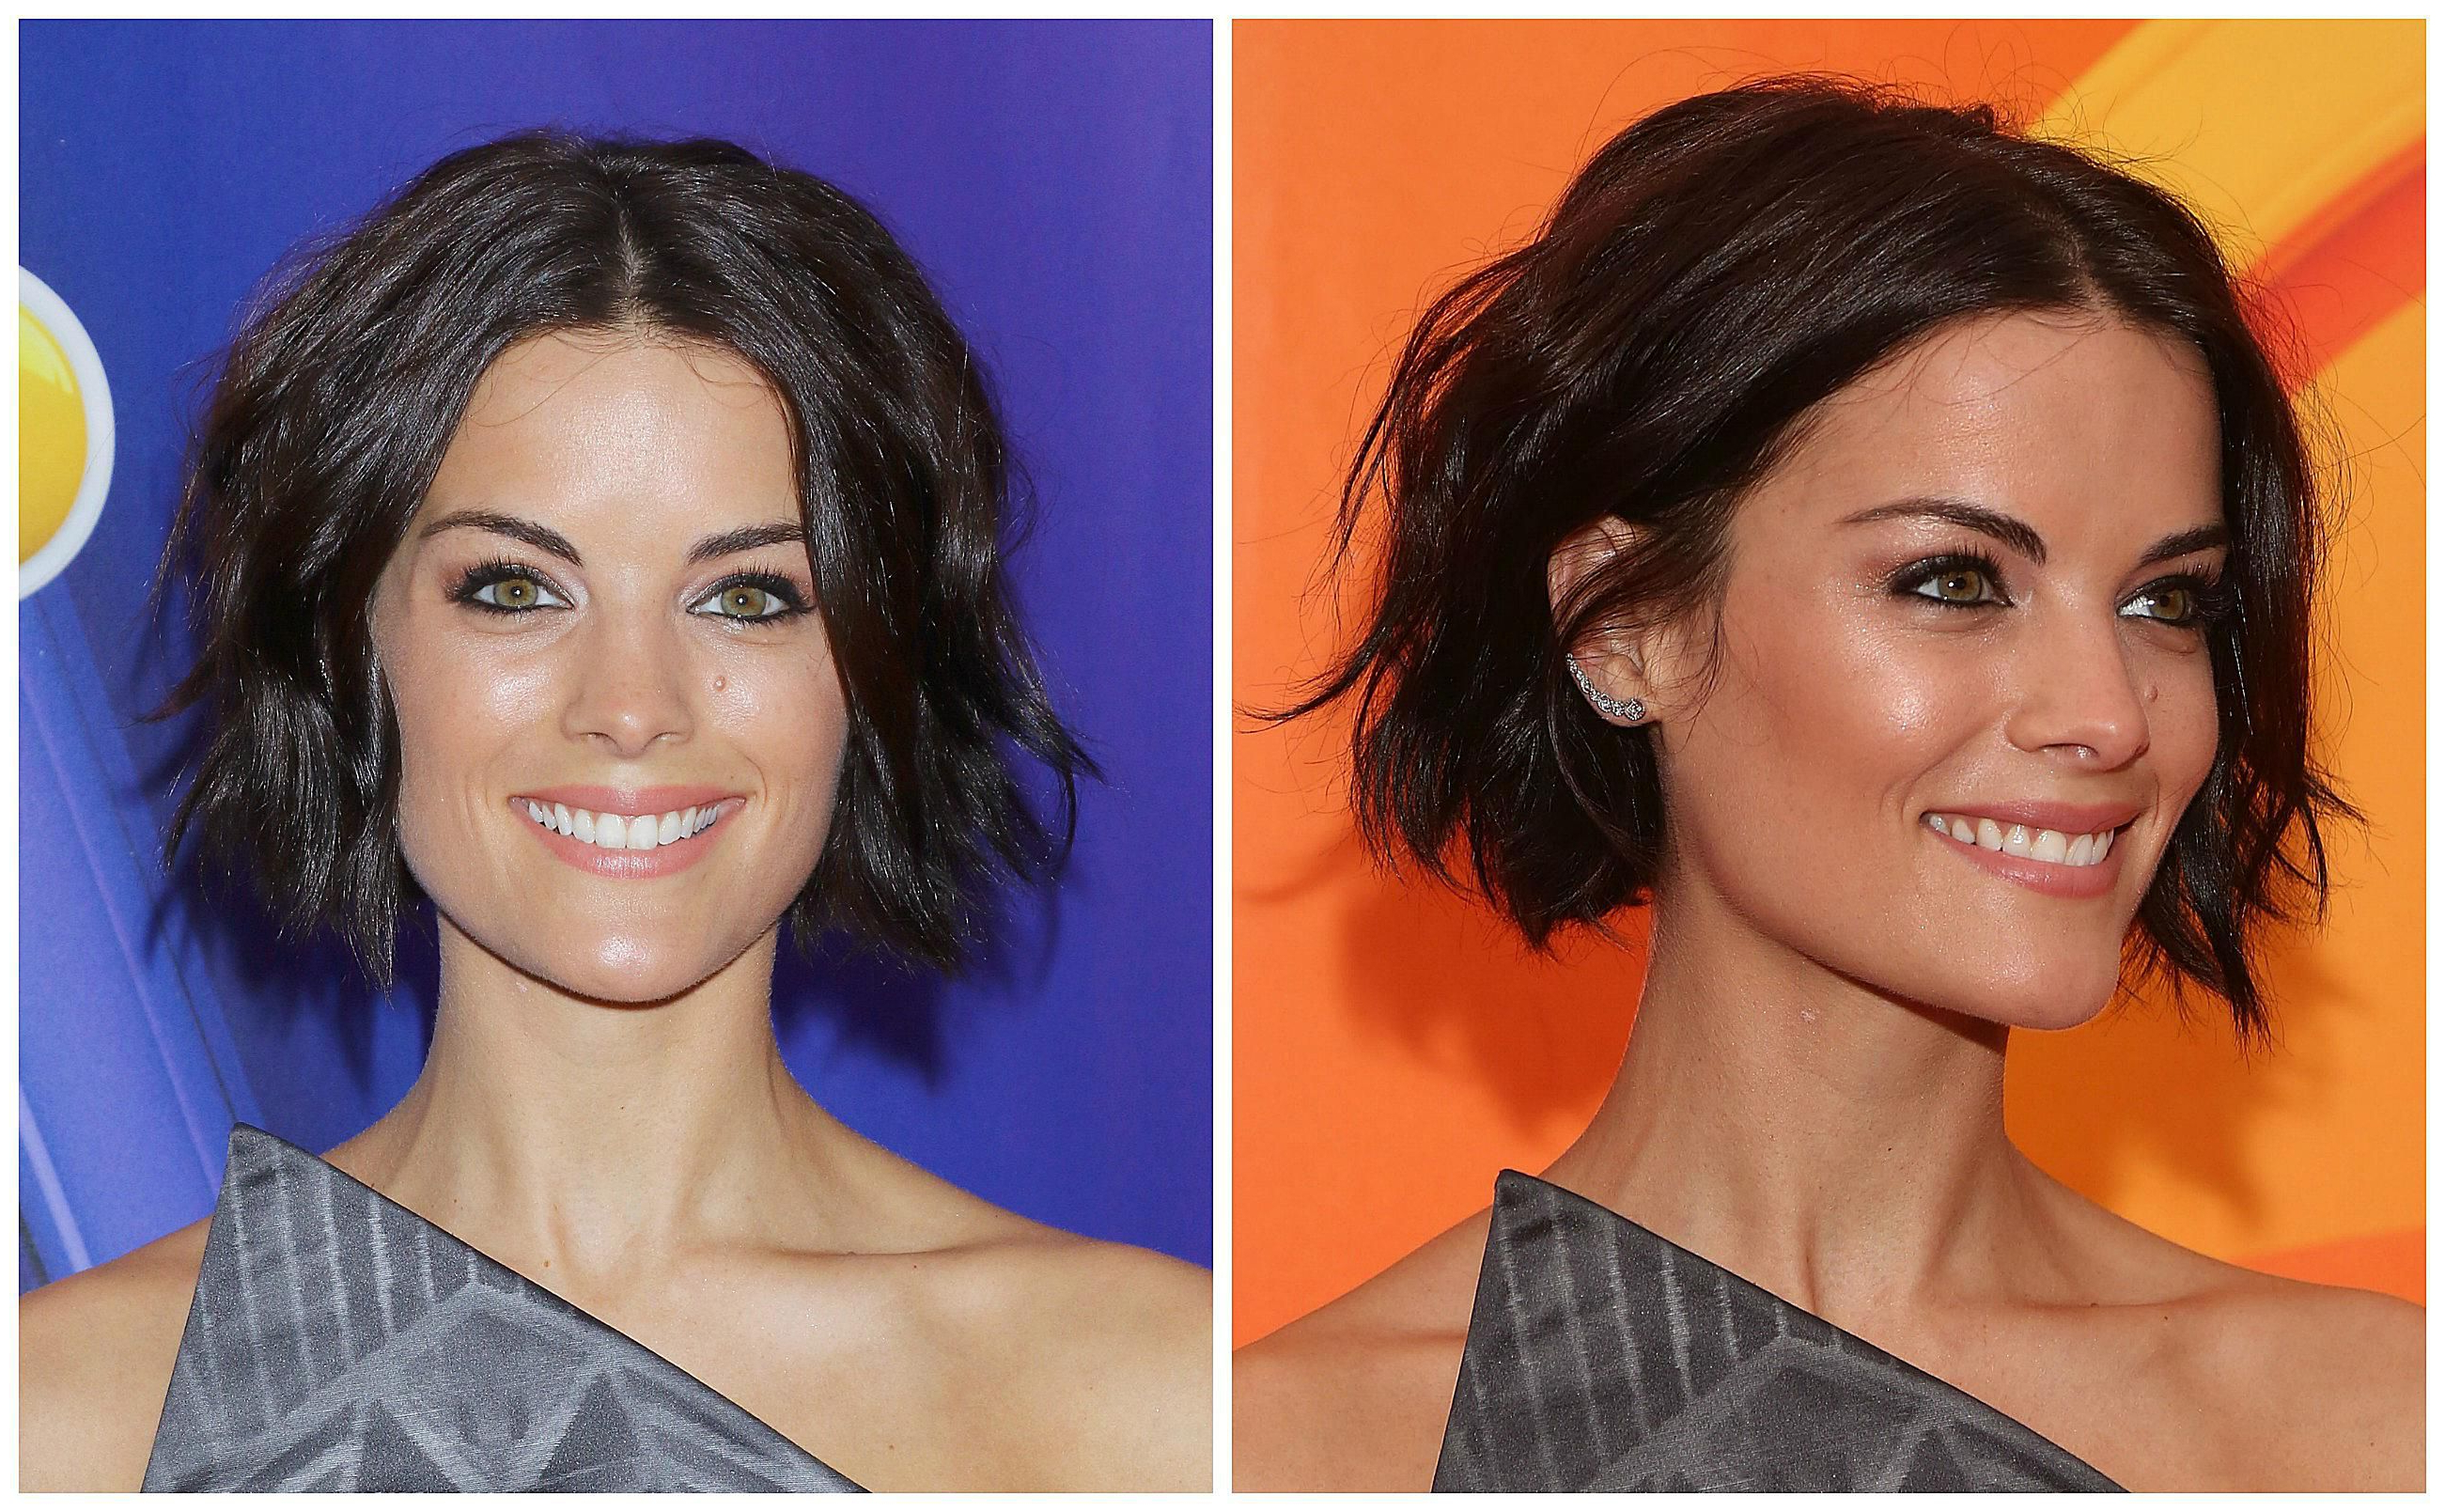 How To Tell If You'd Look Good In Short Hair In Short Hairstyles For Small Faces (View 12 of 25)